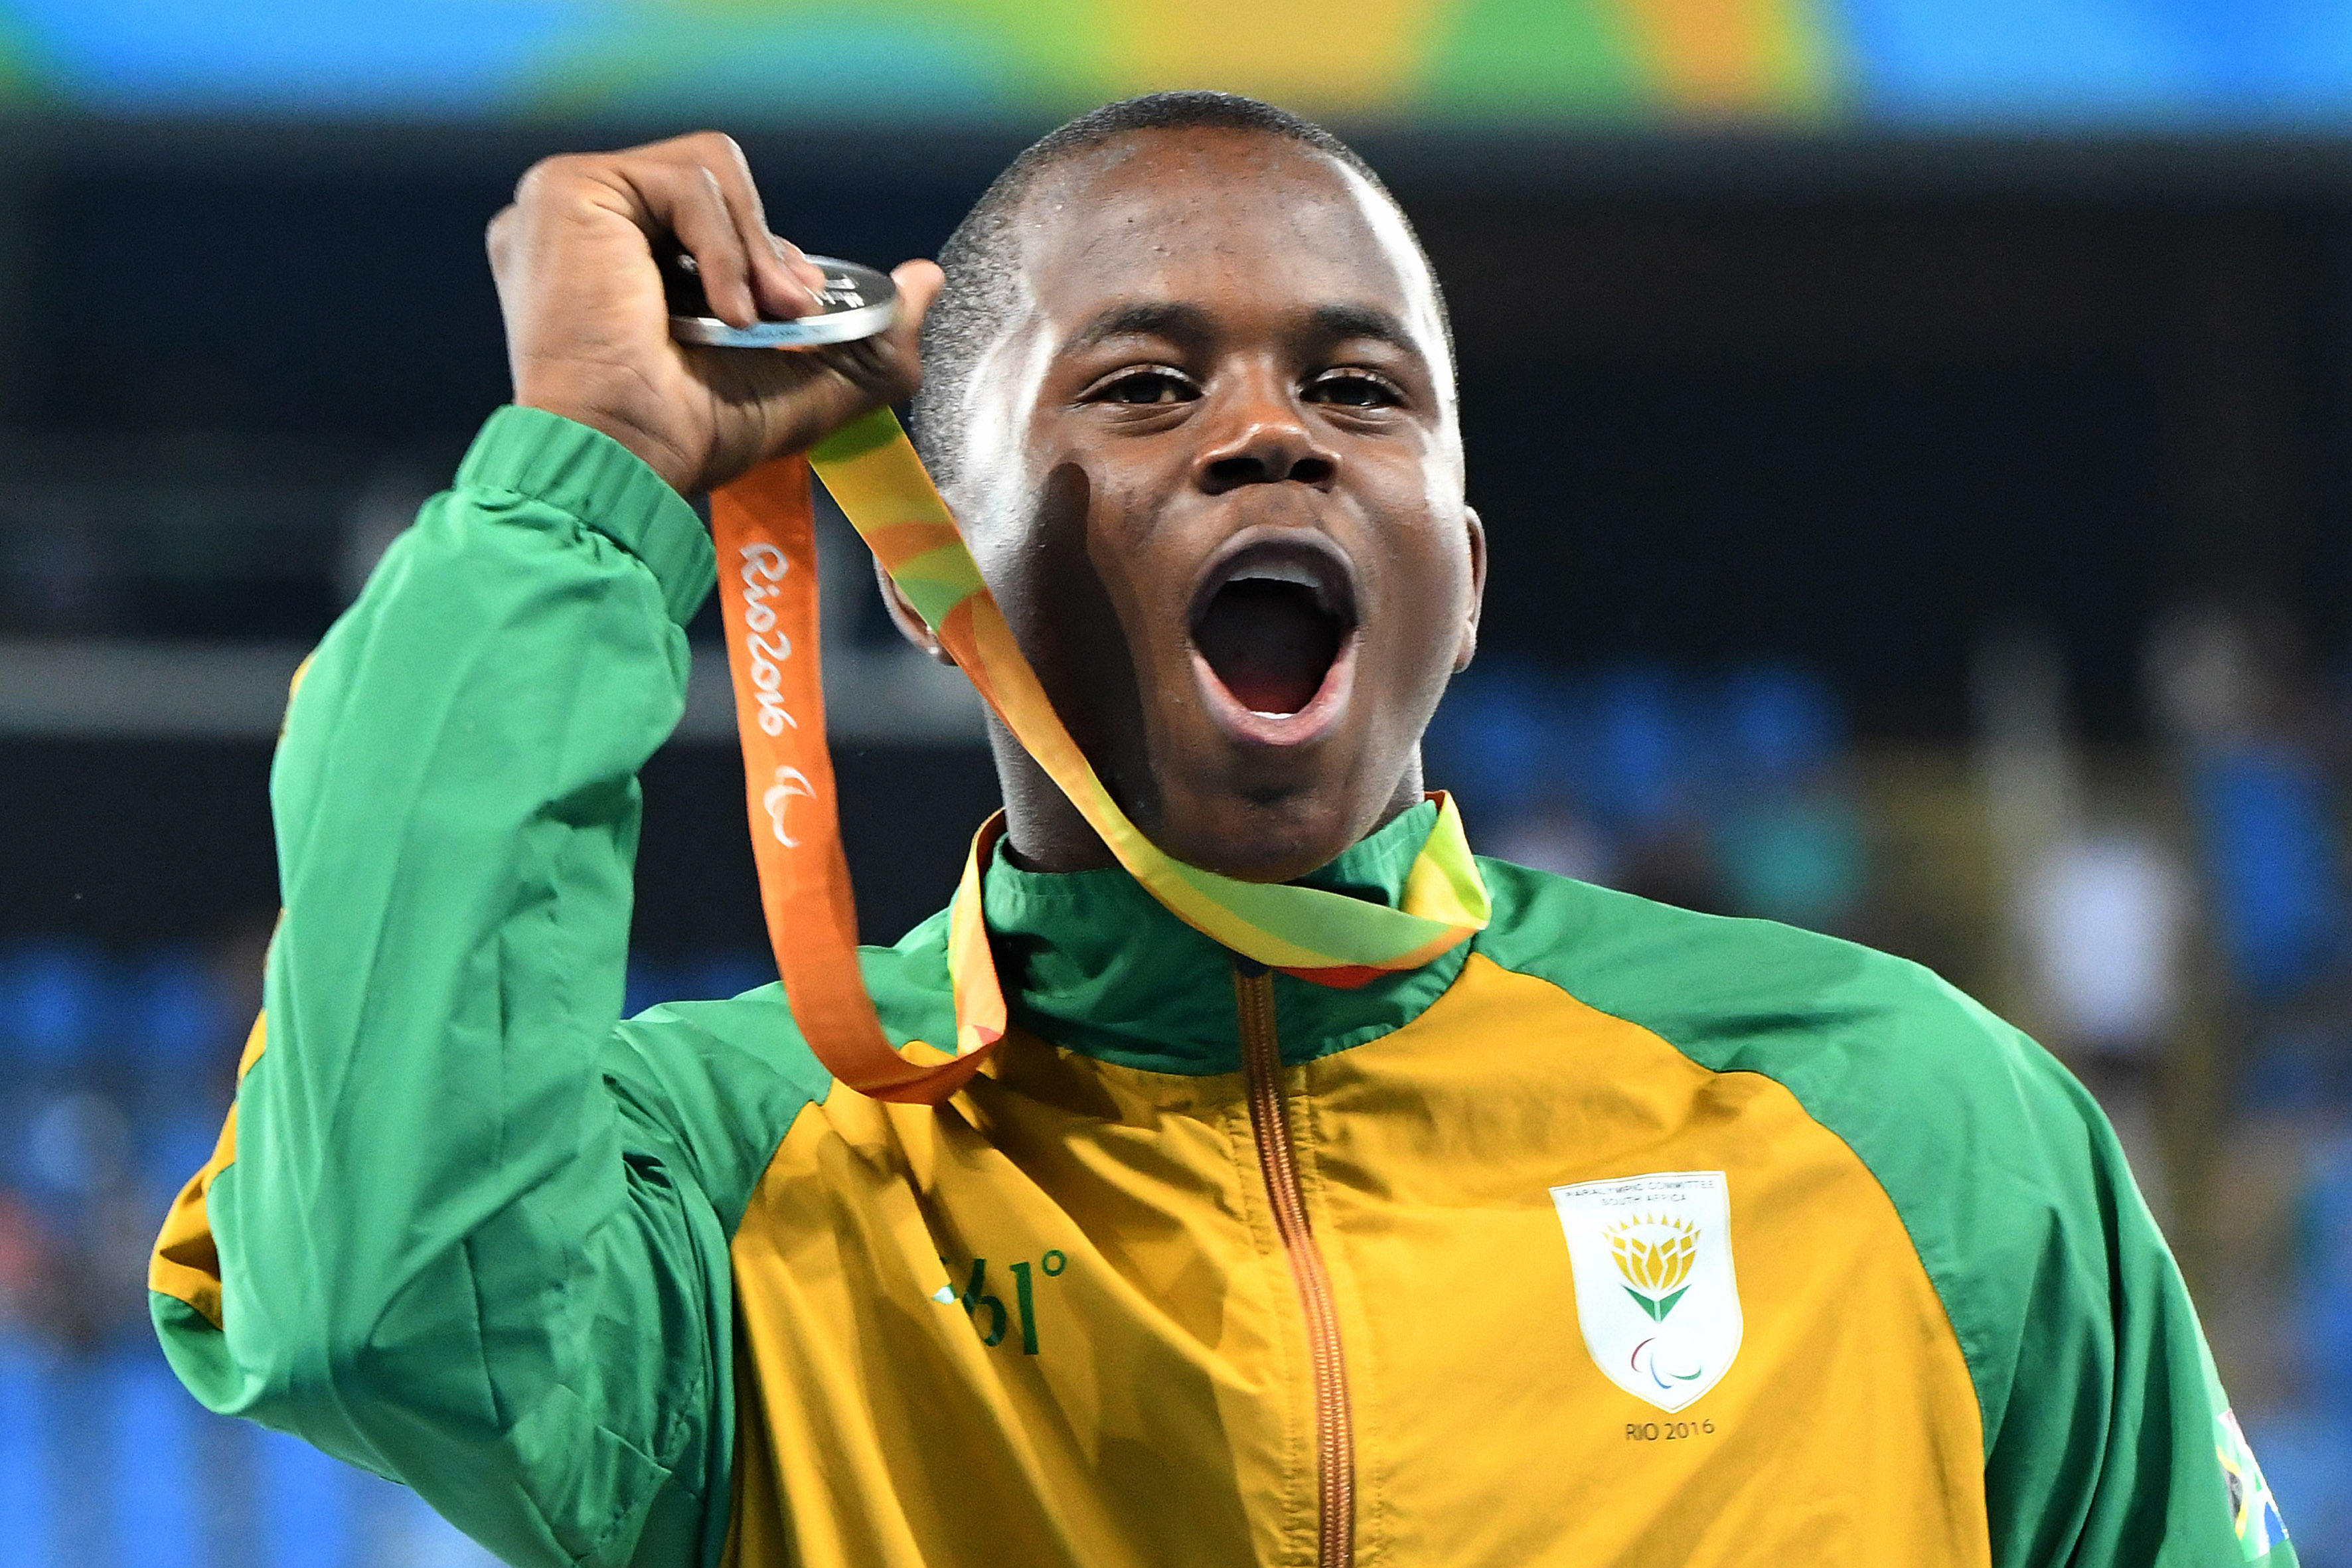 It's six of the best for Team SA in Rio